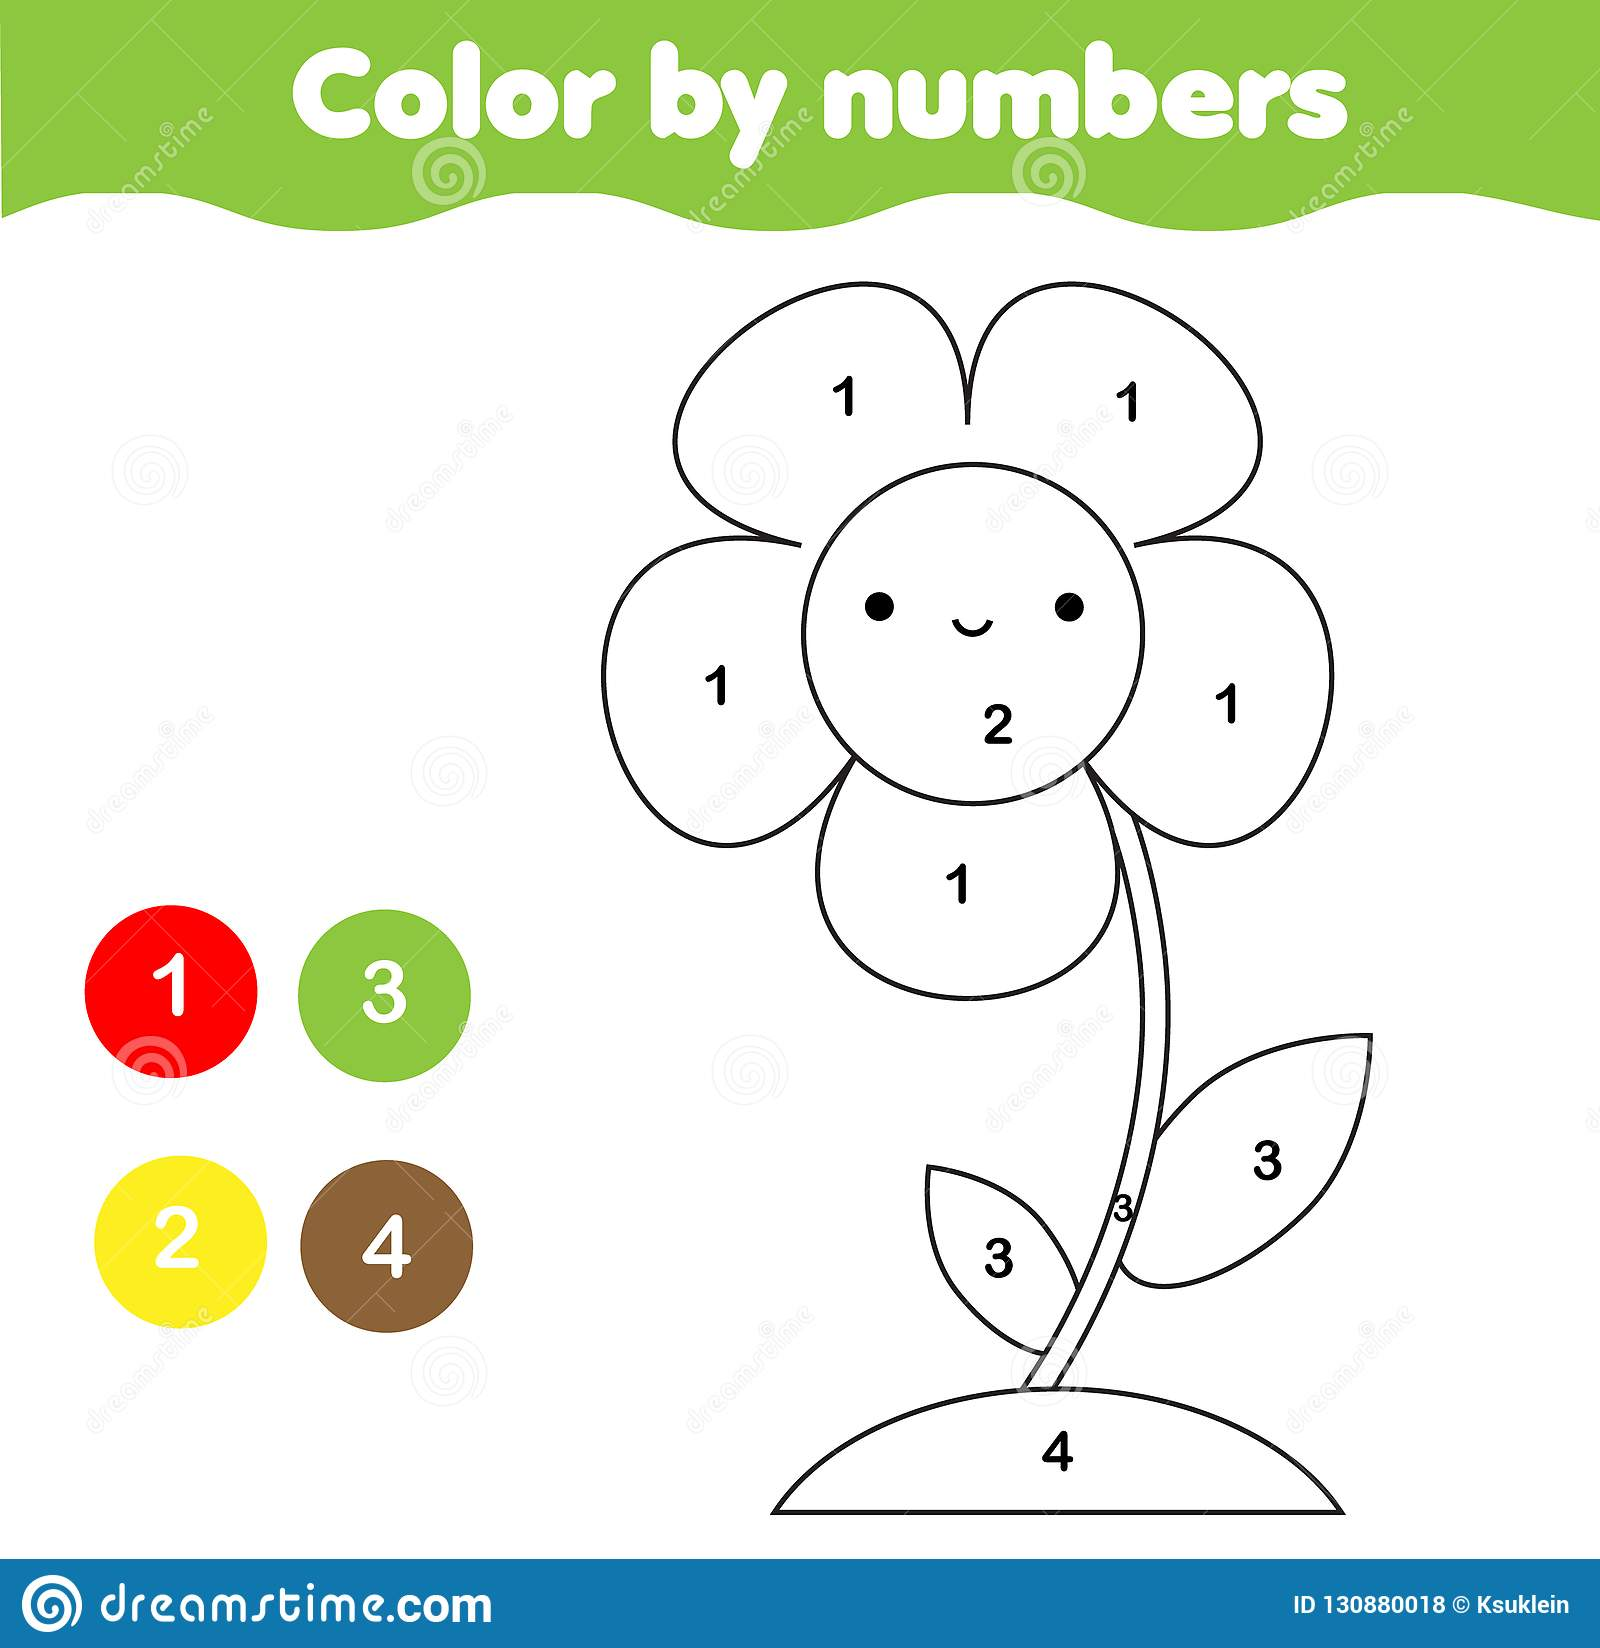 Coloring Page With Flower Color By Numbers Printable Activity For Kids And Children Elementary